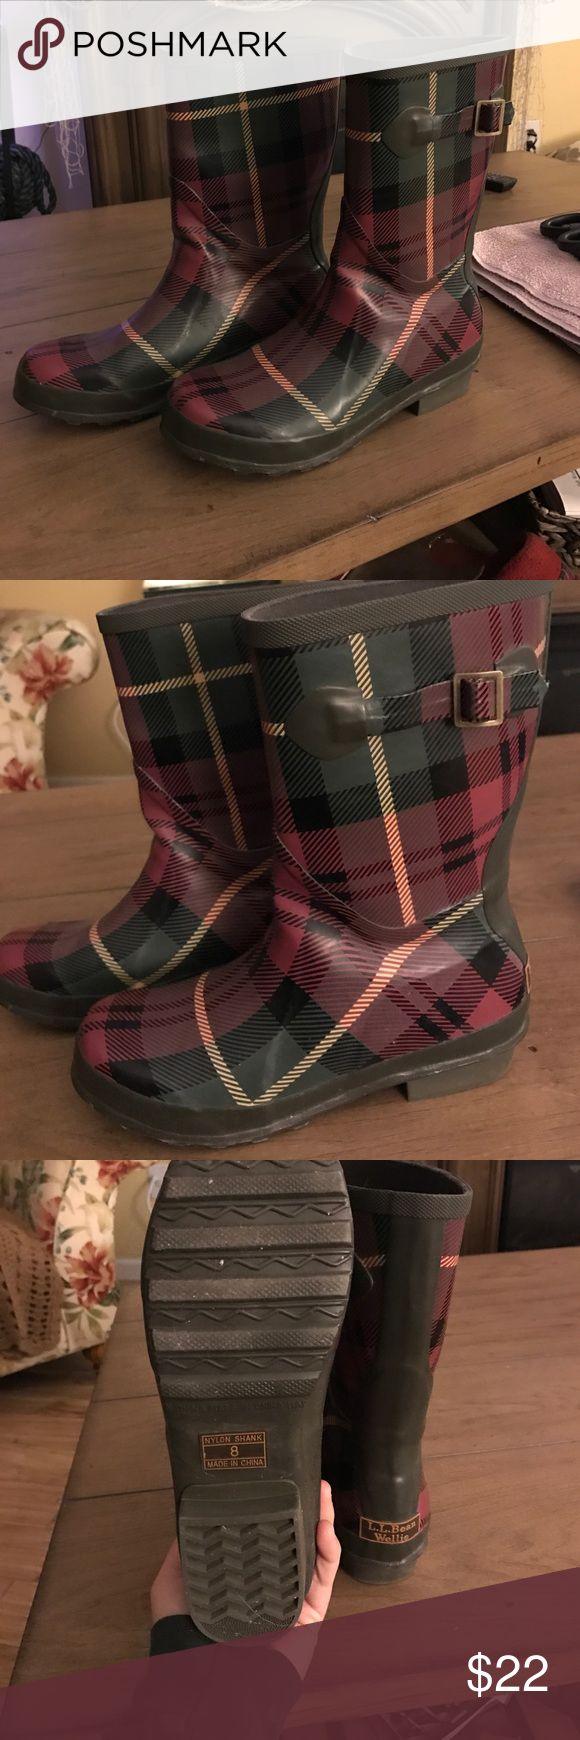 """L.L. Bean rain boots Wellie L.L. Bean rain boots. I believe this is the signature plaid. They are a """"women's 8 medium"""". Very comfortable and stylish. Hardly worn, basically brand new. I posted one picture with the flash so you can see the colors. L.L. Bean Shoes Winter & Rain Boots"""